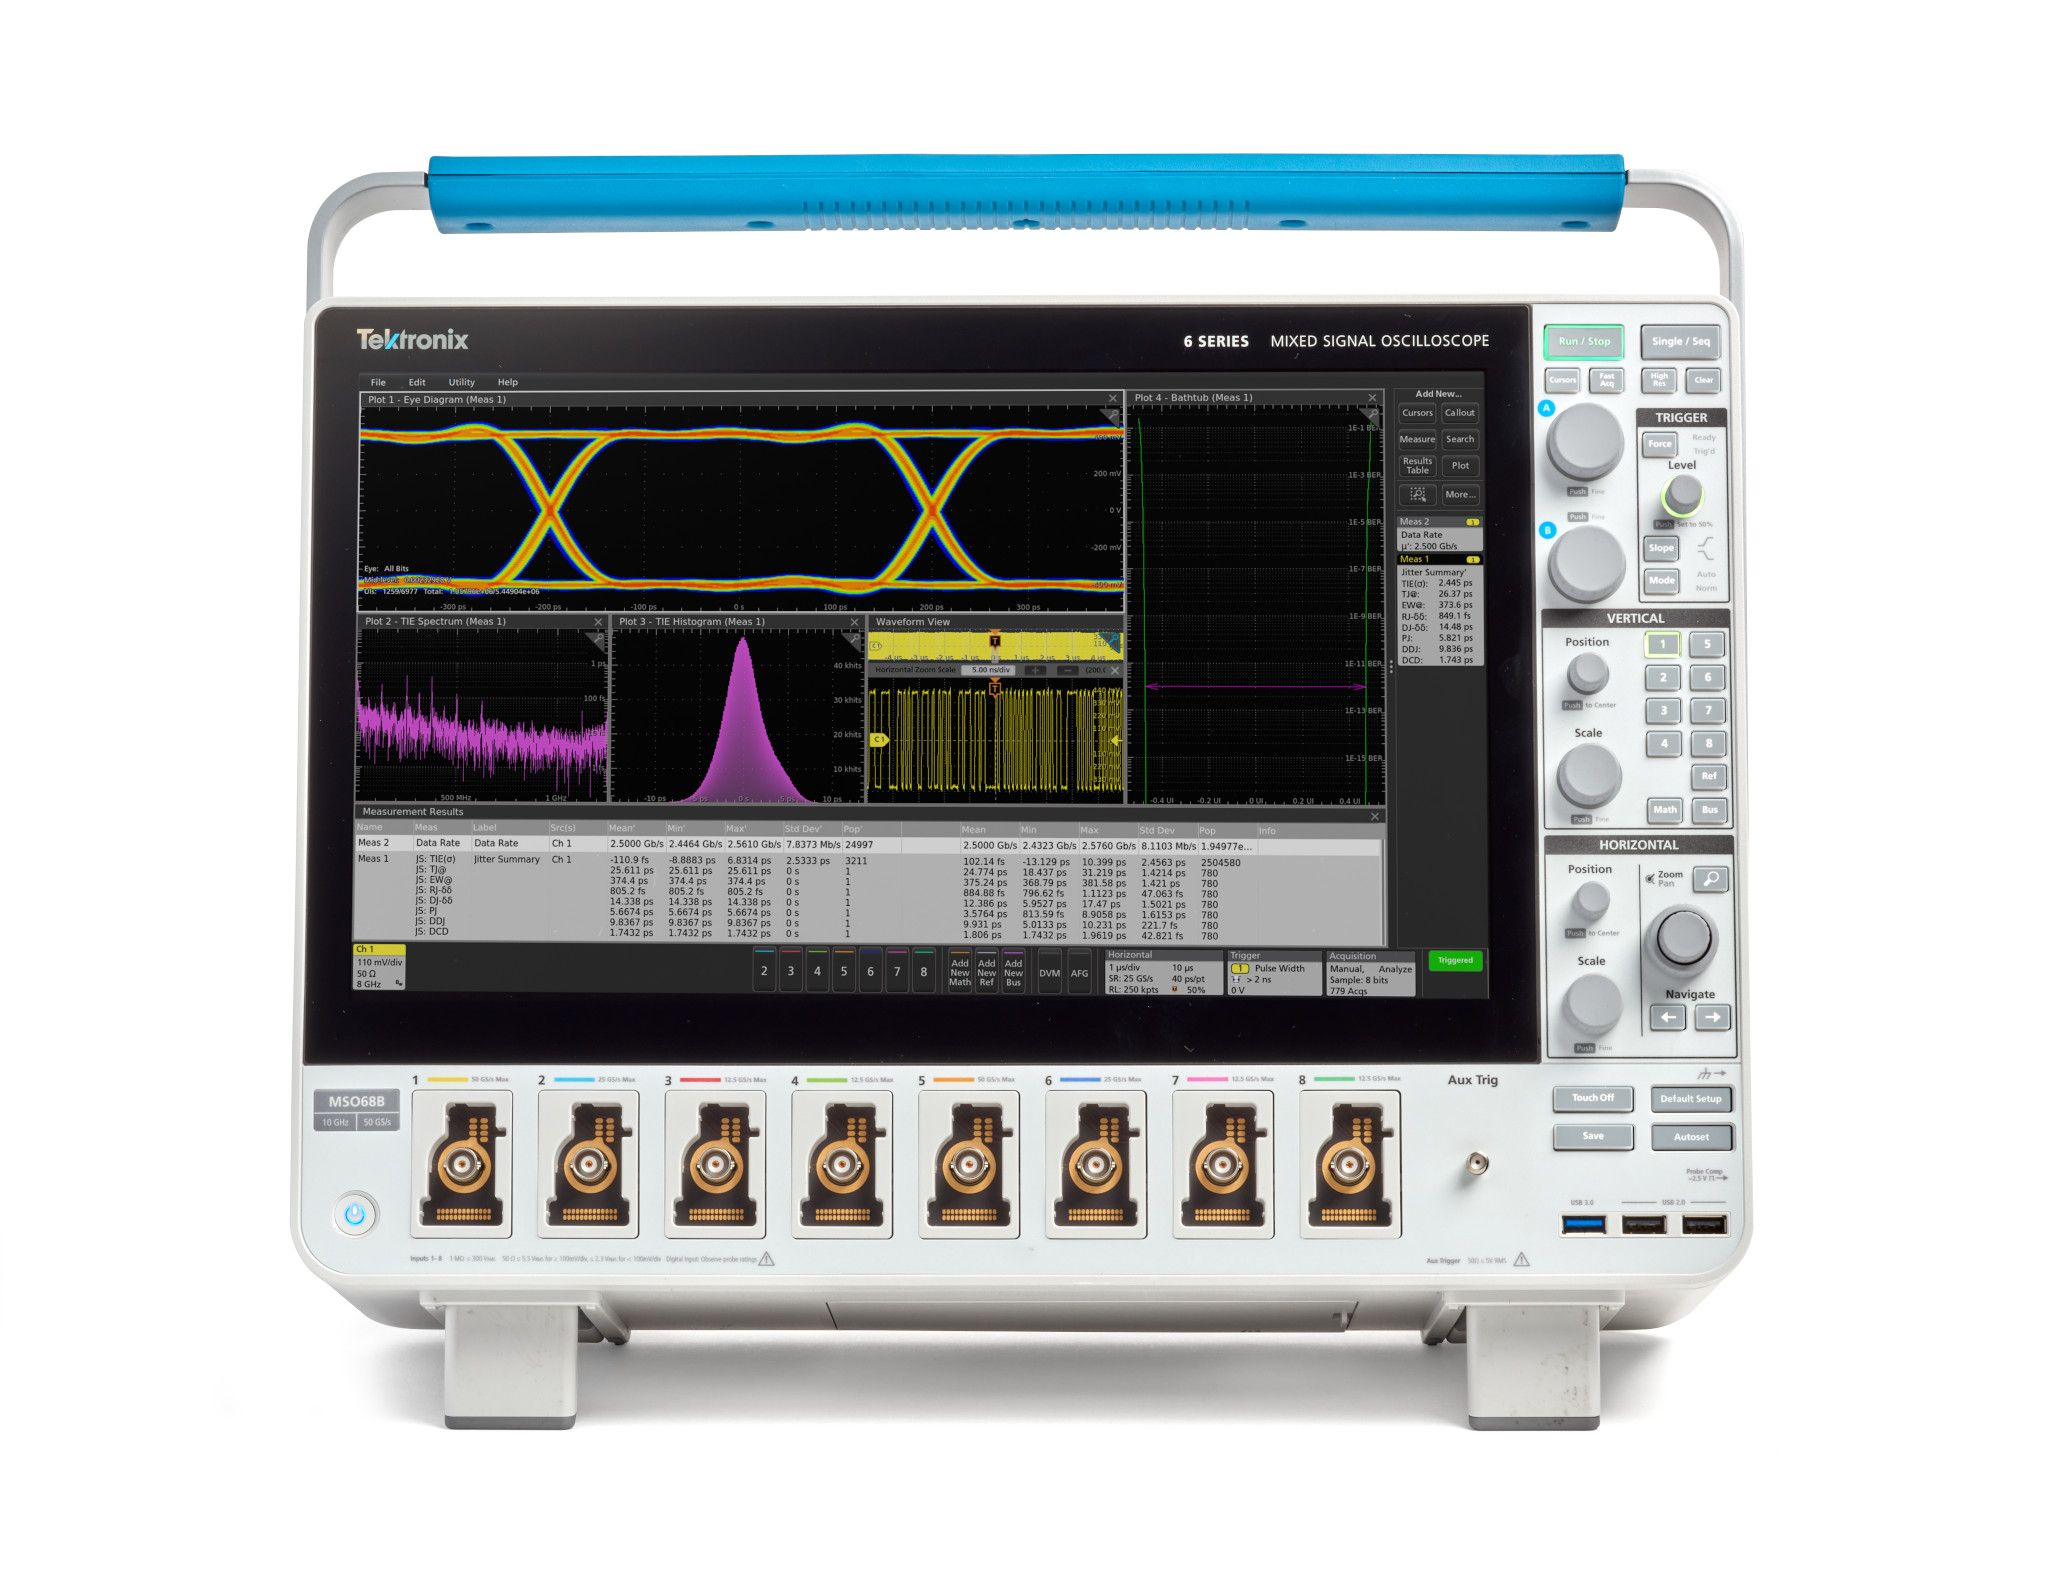 Tektronix Delivers Industry's First 10 GHz Oscilloscope with 4, 6 or 8 Channels